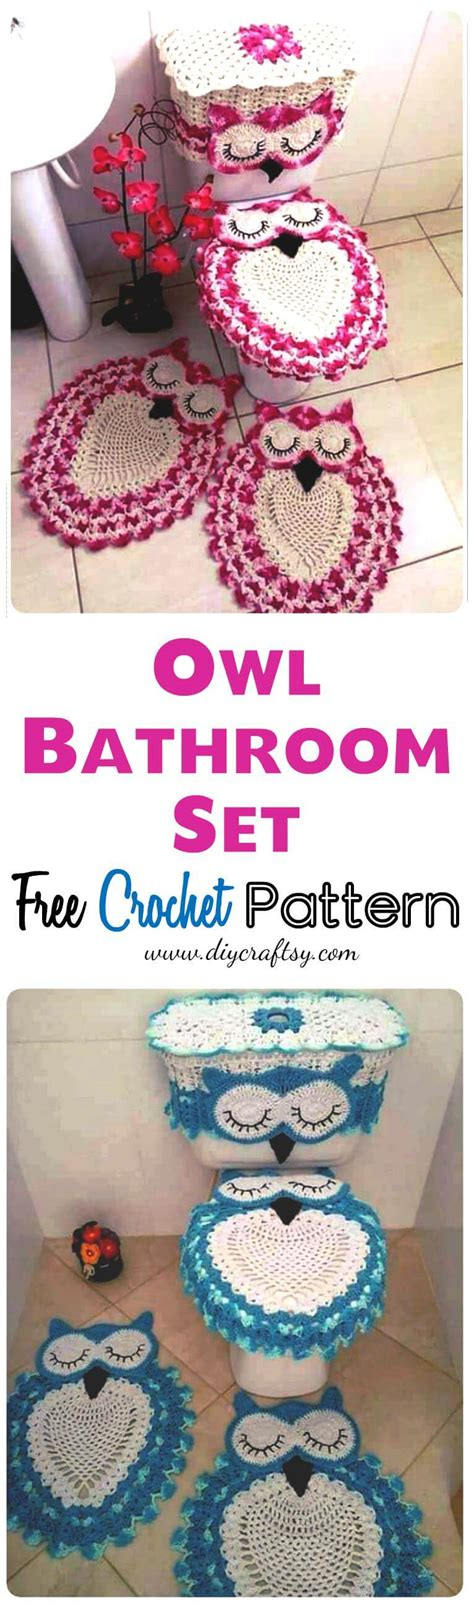 owl bathroom sets owl bathroom set free crochet pattern diy crafts